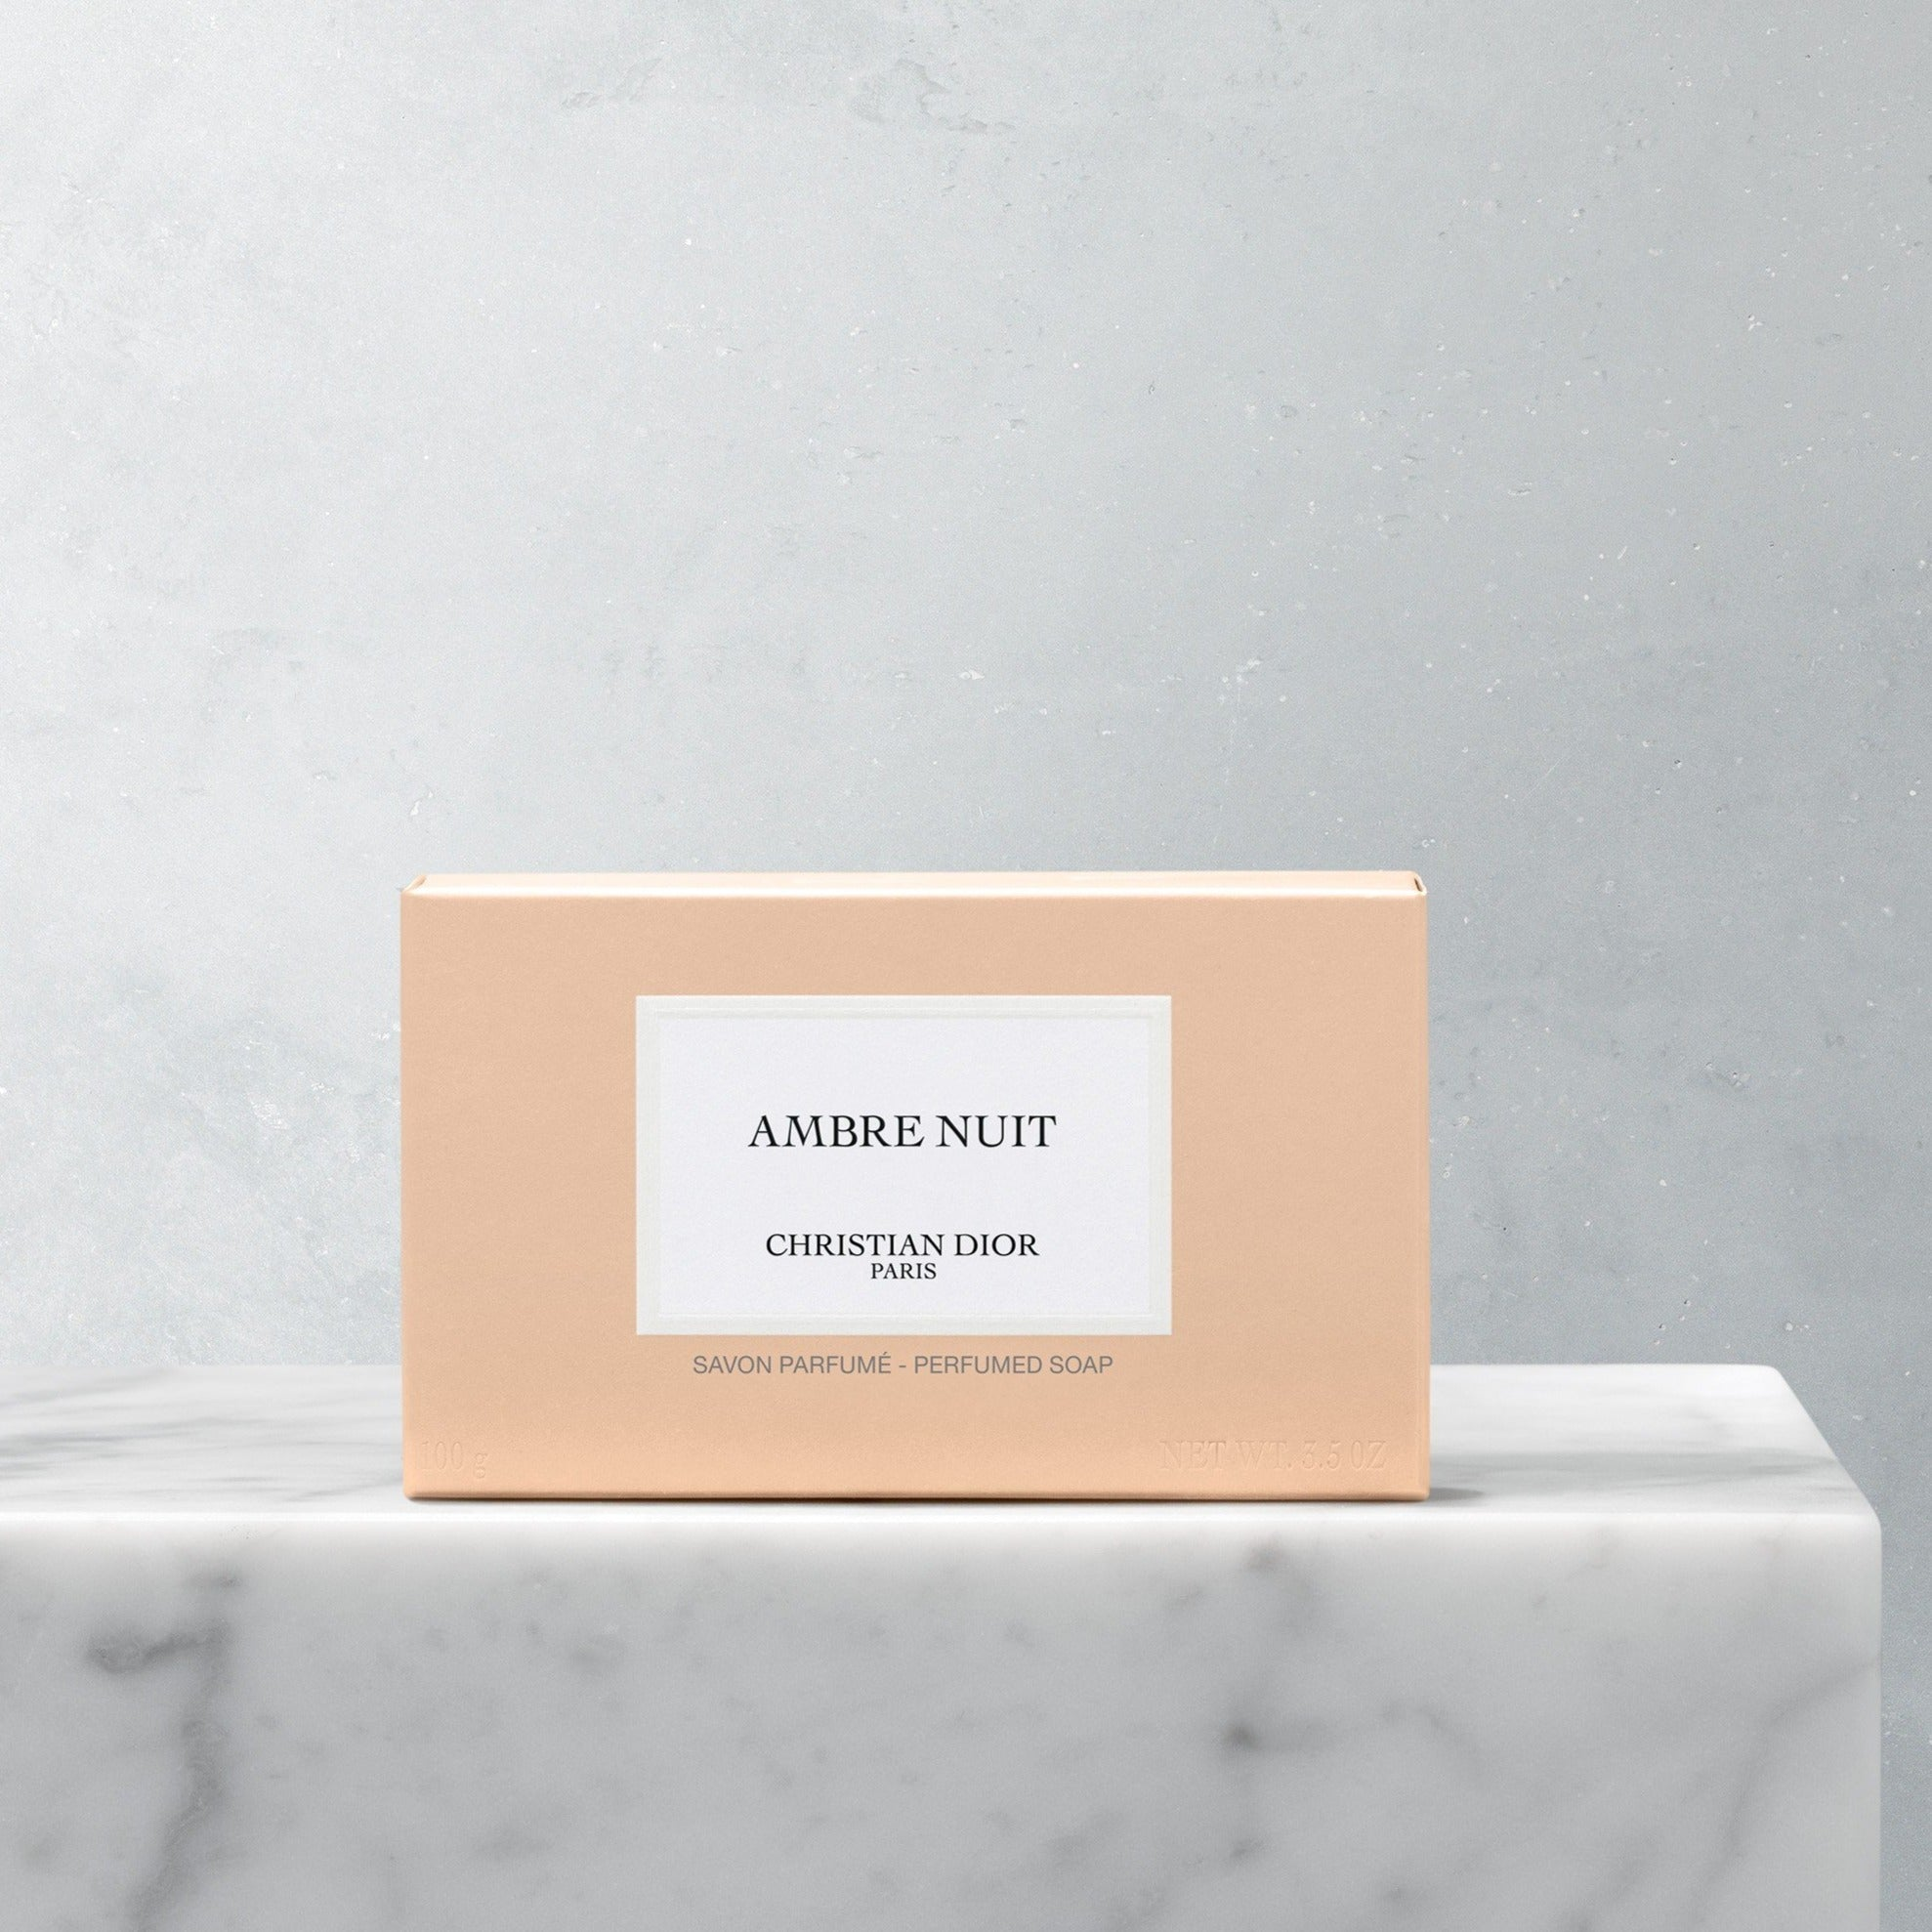 AMBRE NUIT | Solid Soap